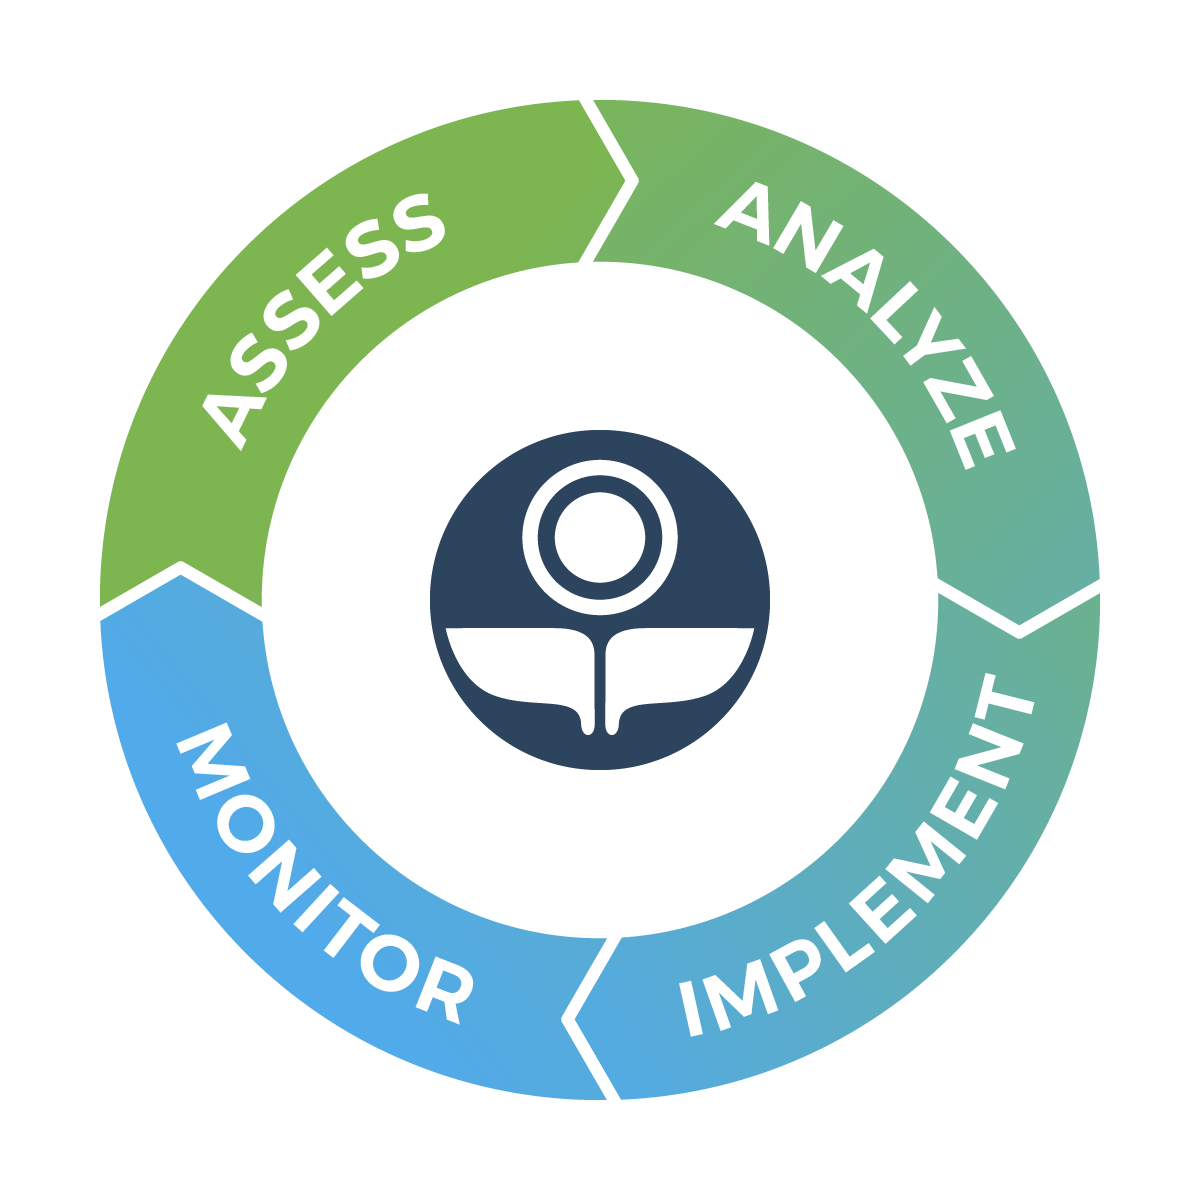 Vibrant Planet Assess-Analyze-Implement-Monitor Services Diagram